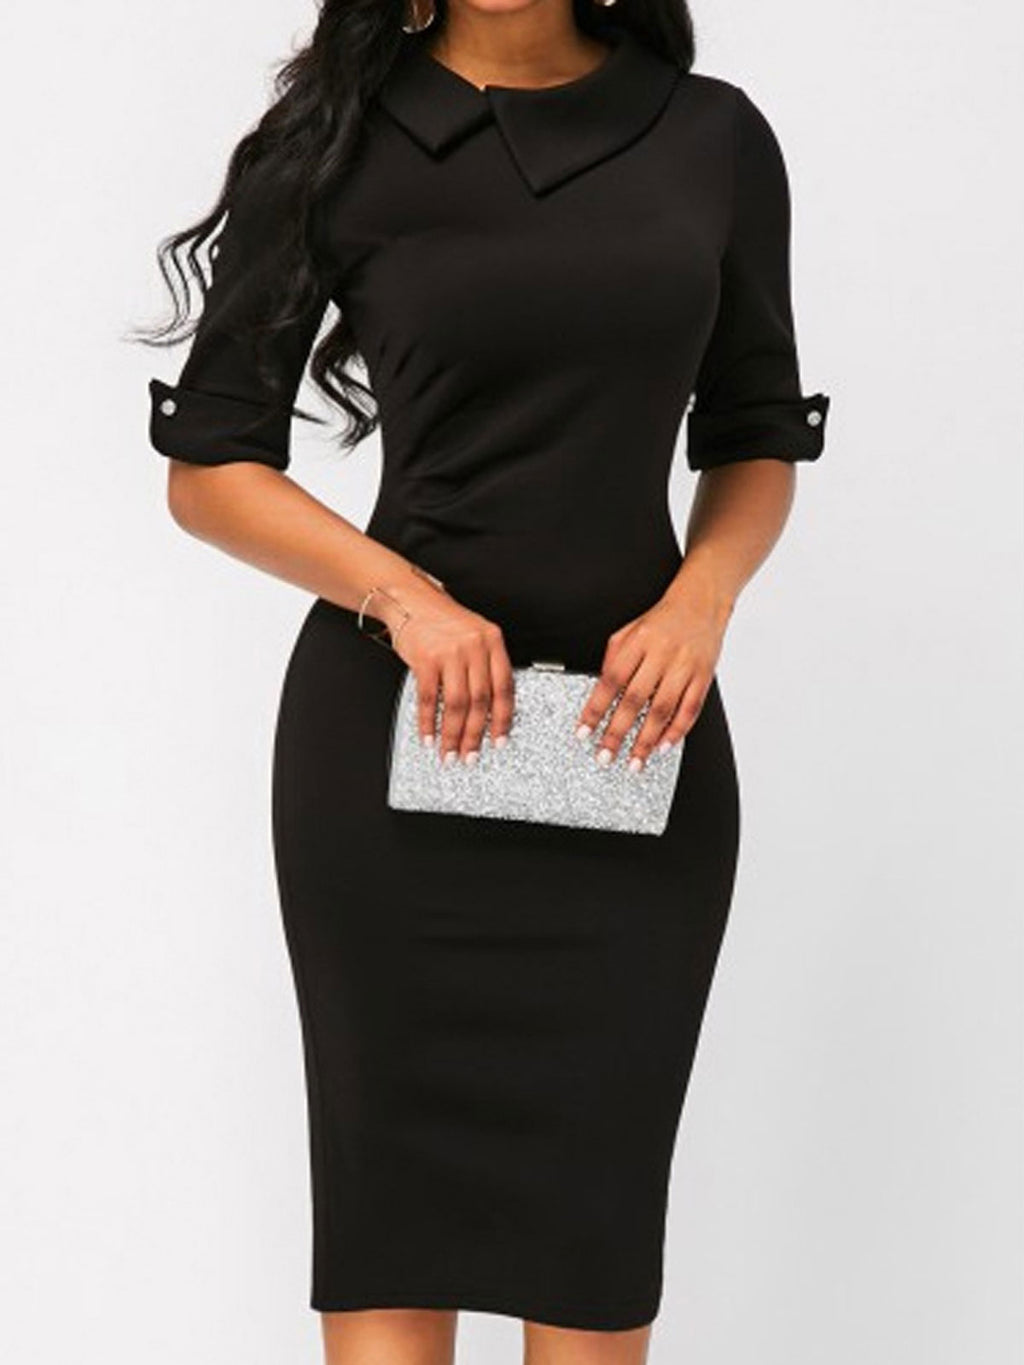 Black Basic Plus Size Bodycon Sheath Work Office Pencil Bodycon Dress Rikkishop